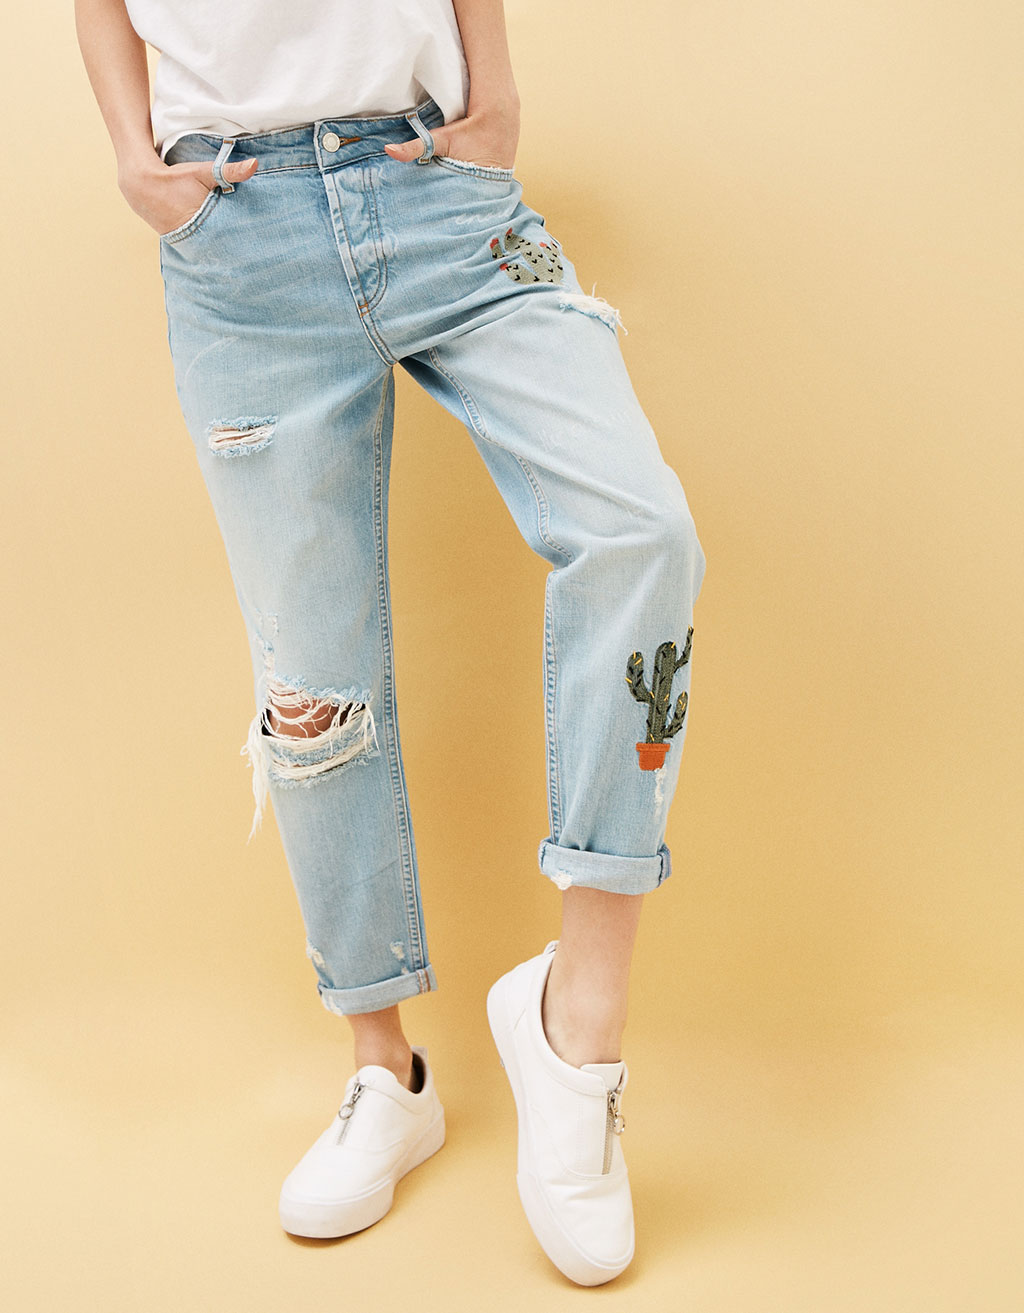 Relaxed fit jeans with cactus embroidery